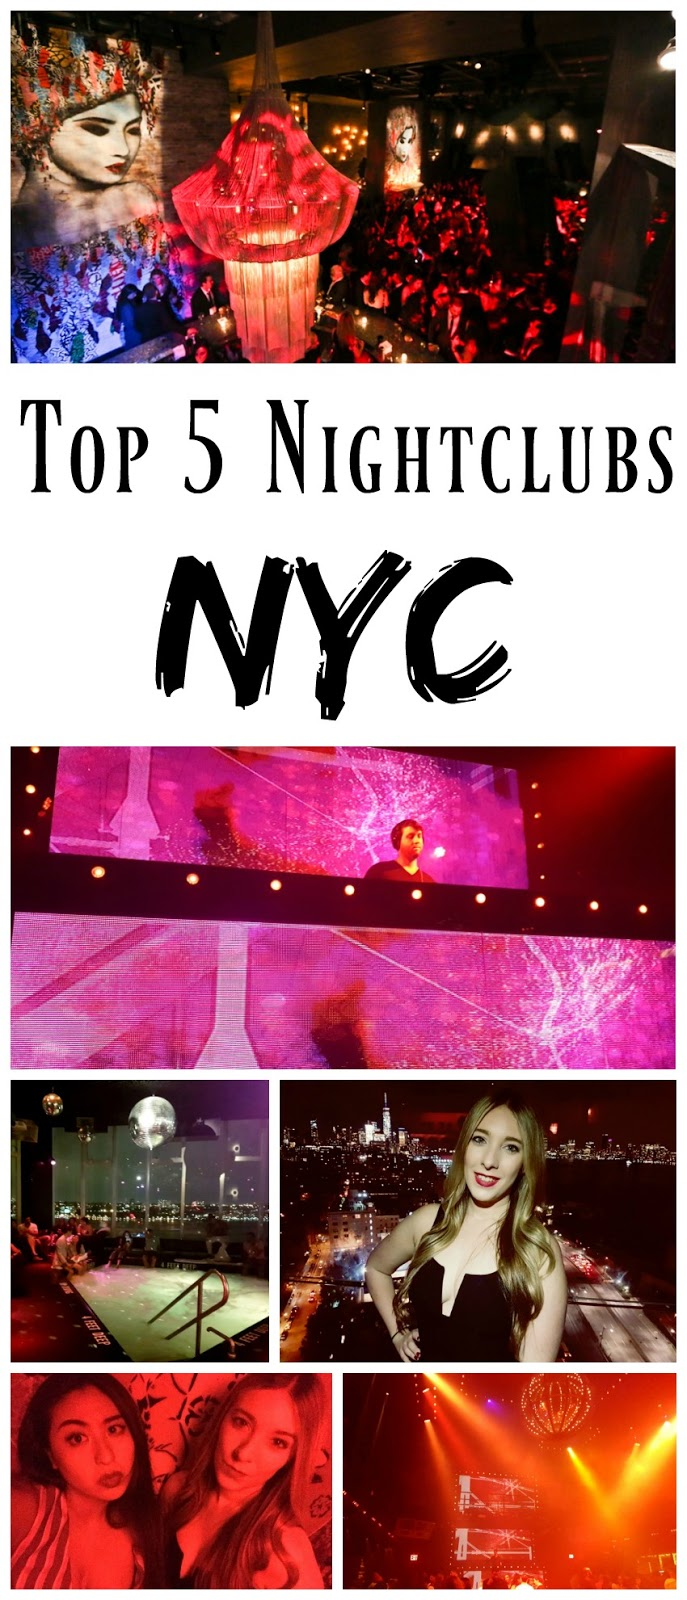 The Top 5 Nightclubs in New York City, and how to get into them!